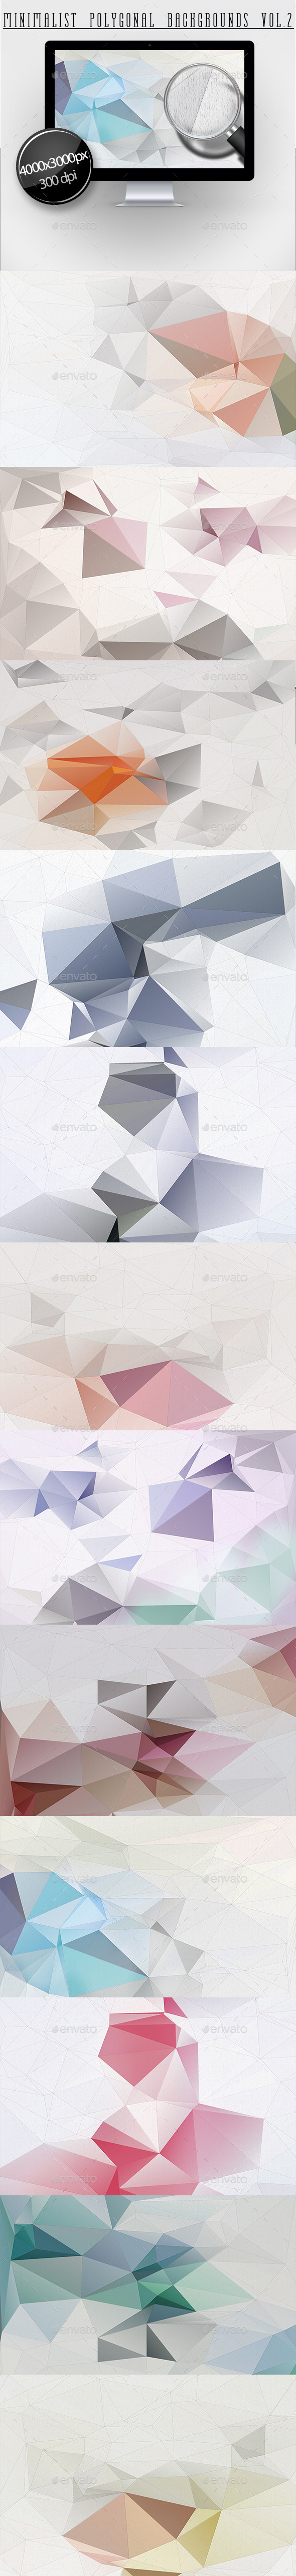 Minimalist Polygonal Backgrounds Vol.2